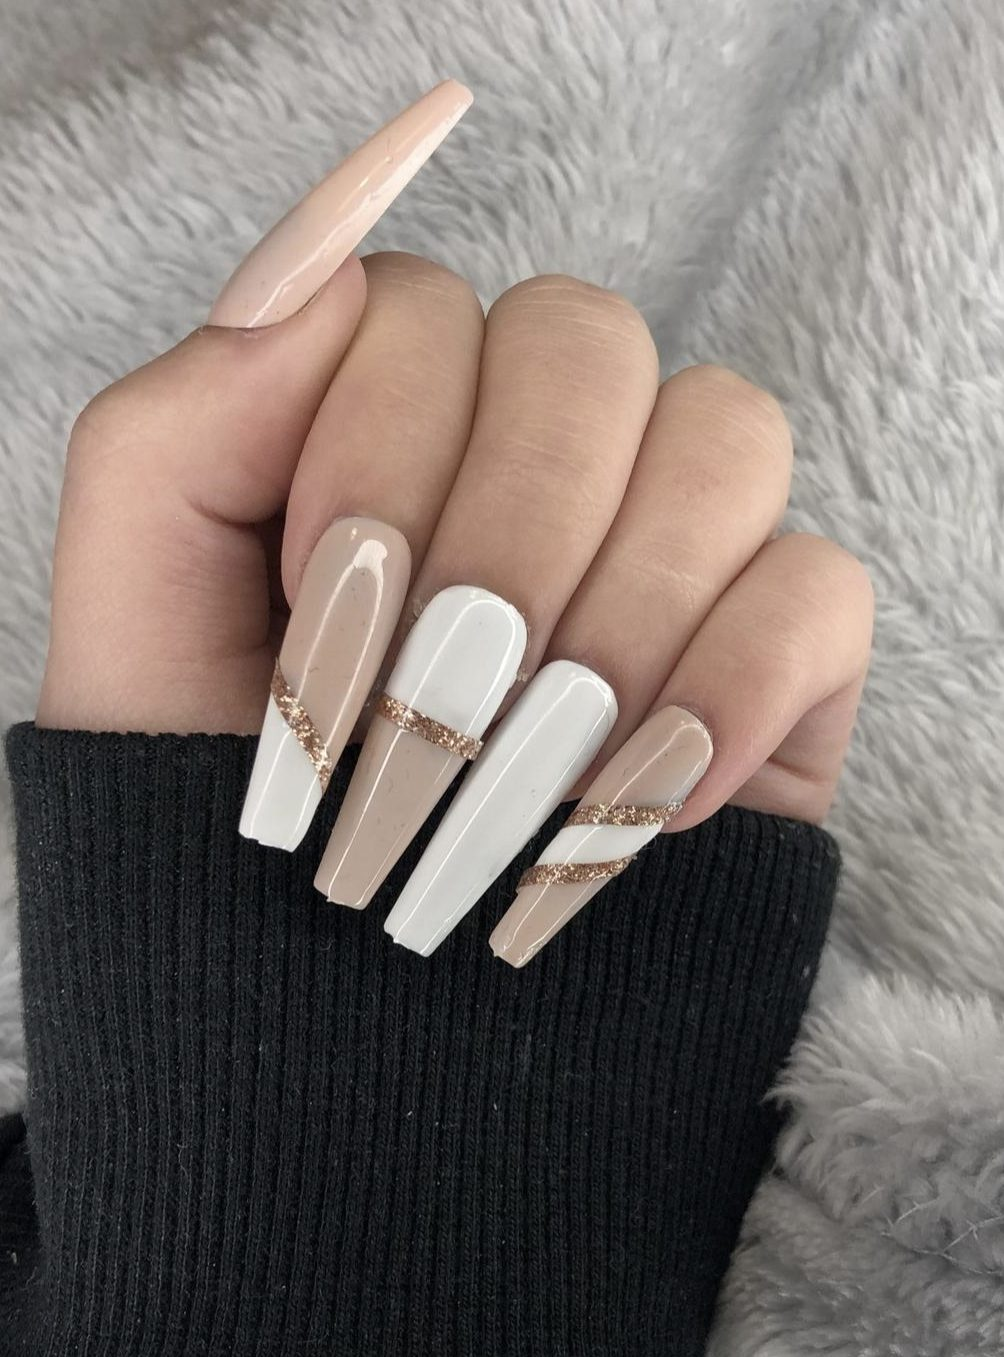 White and nude nails with gold glitter